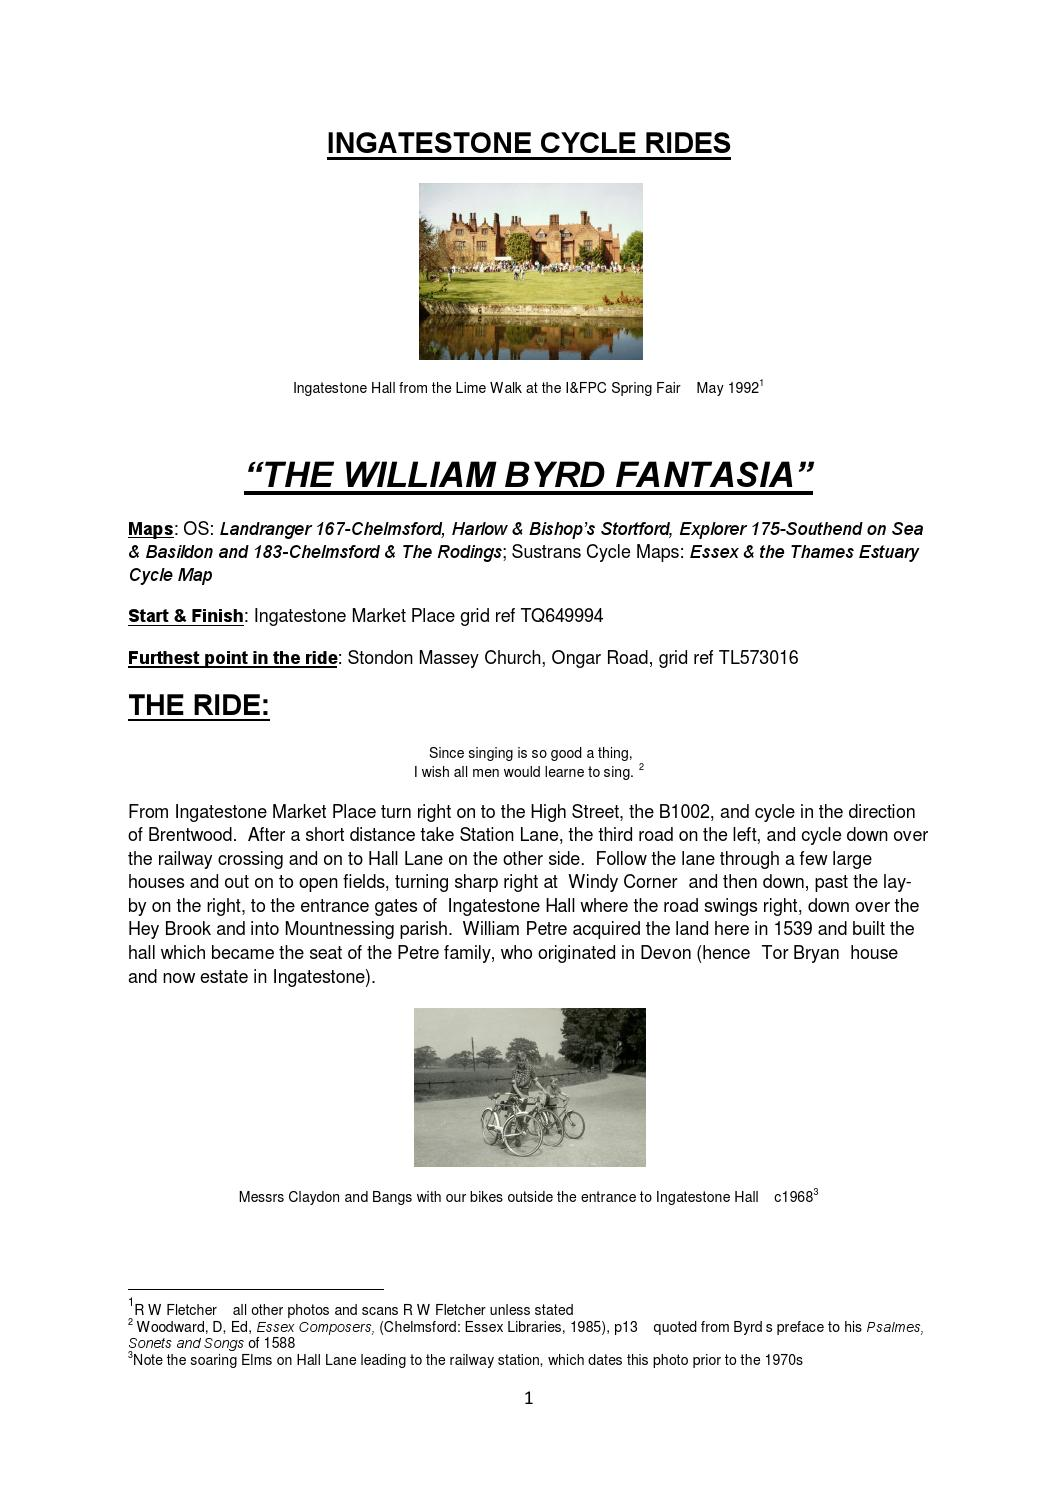 Ingatestone Cycle Rides-The William Byrd Fantasia by Robert